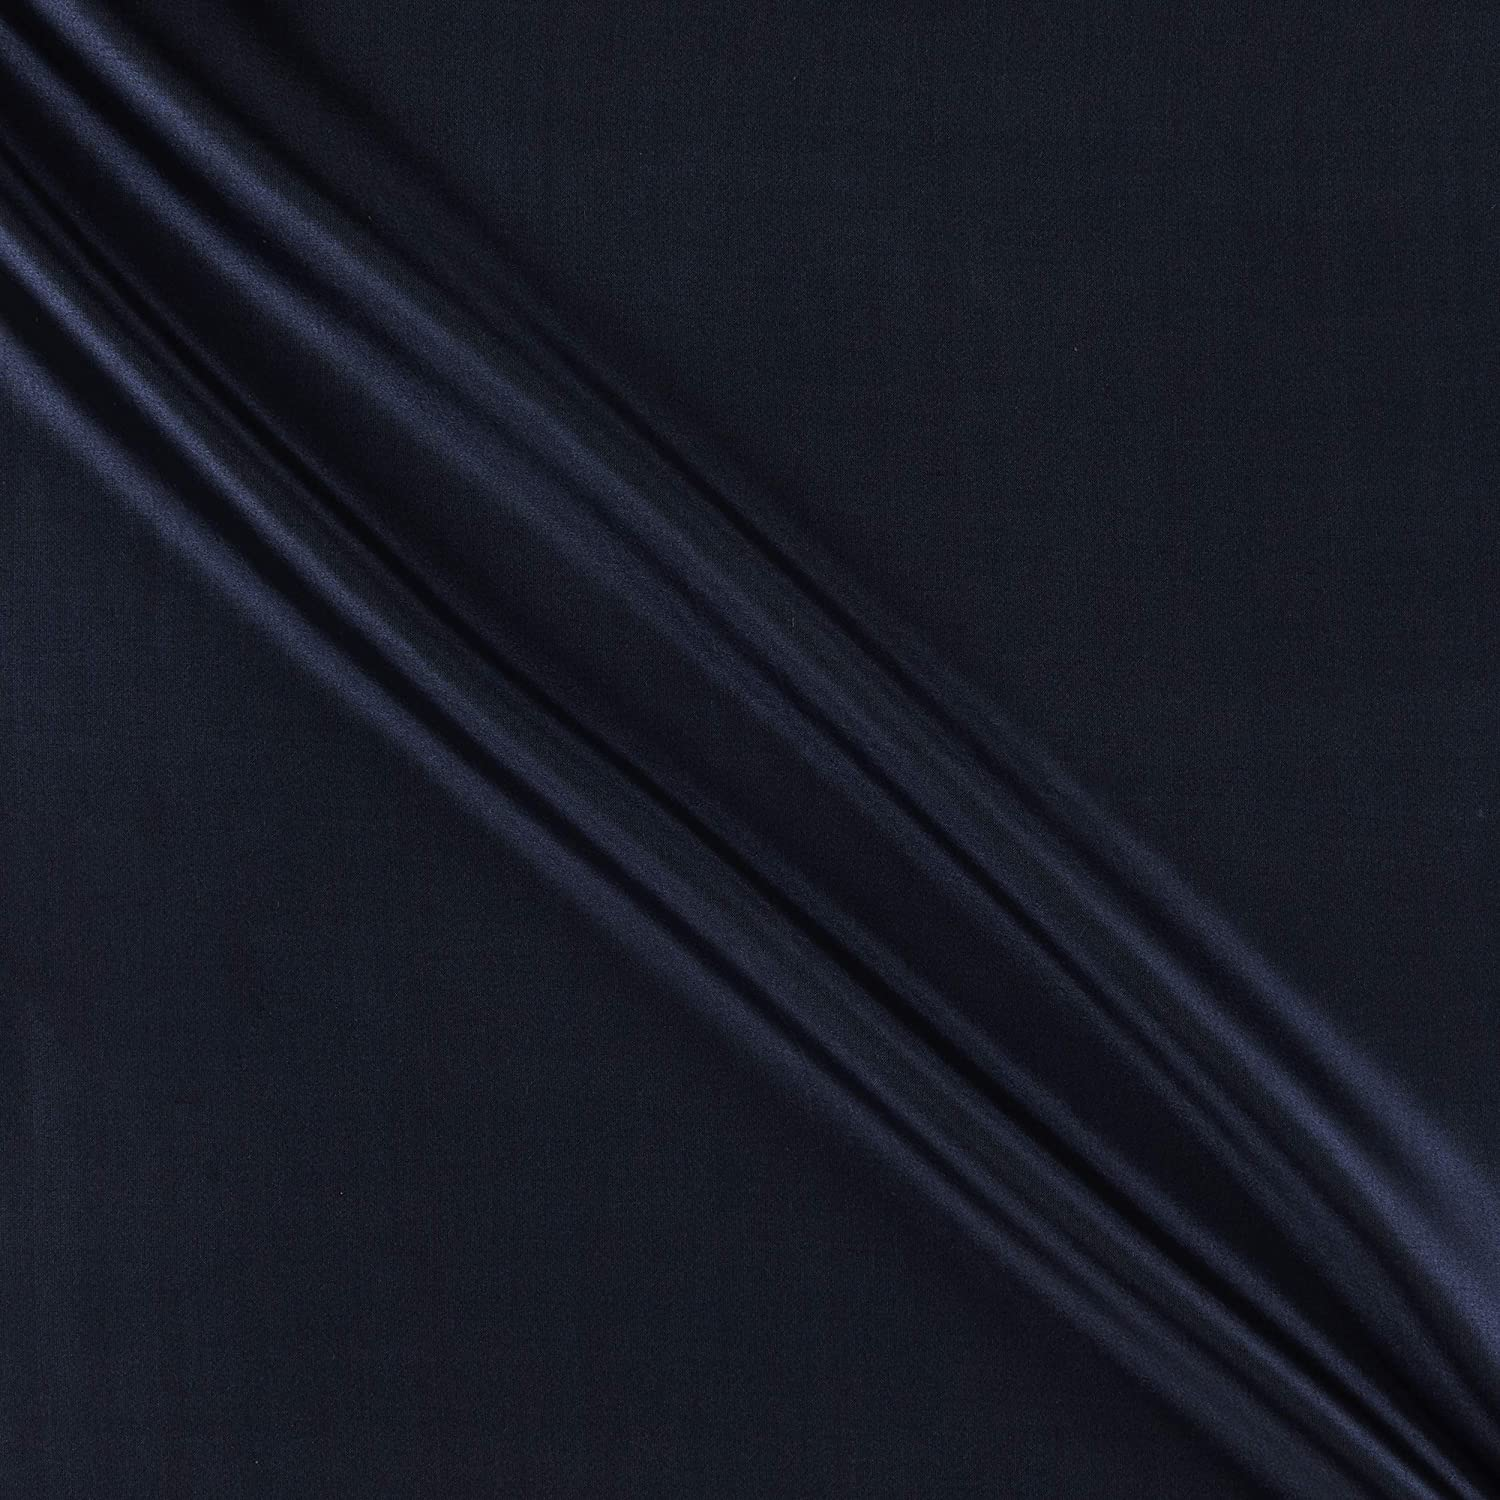 Discount is also underway China Silk Lining Navy 25 Bolt Yard SEAL limited product